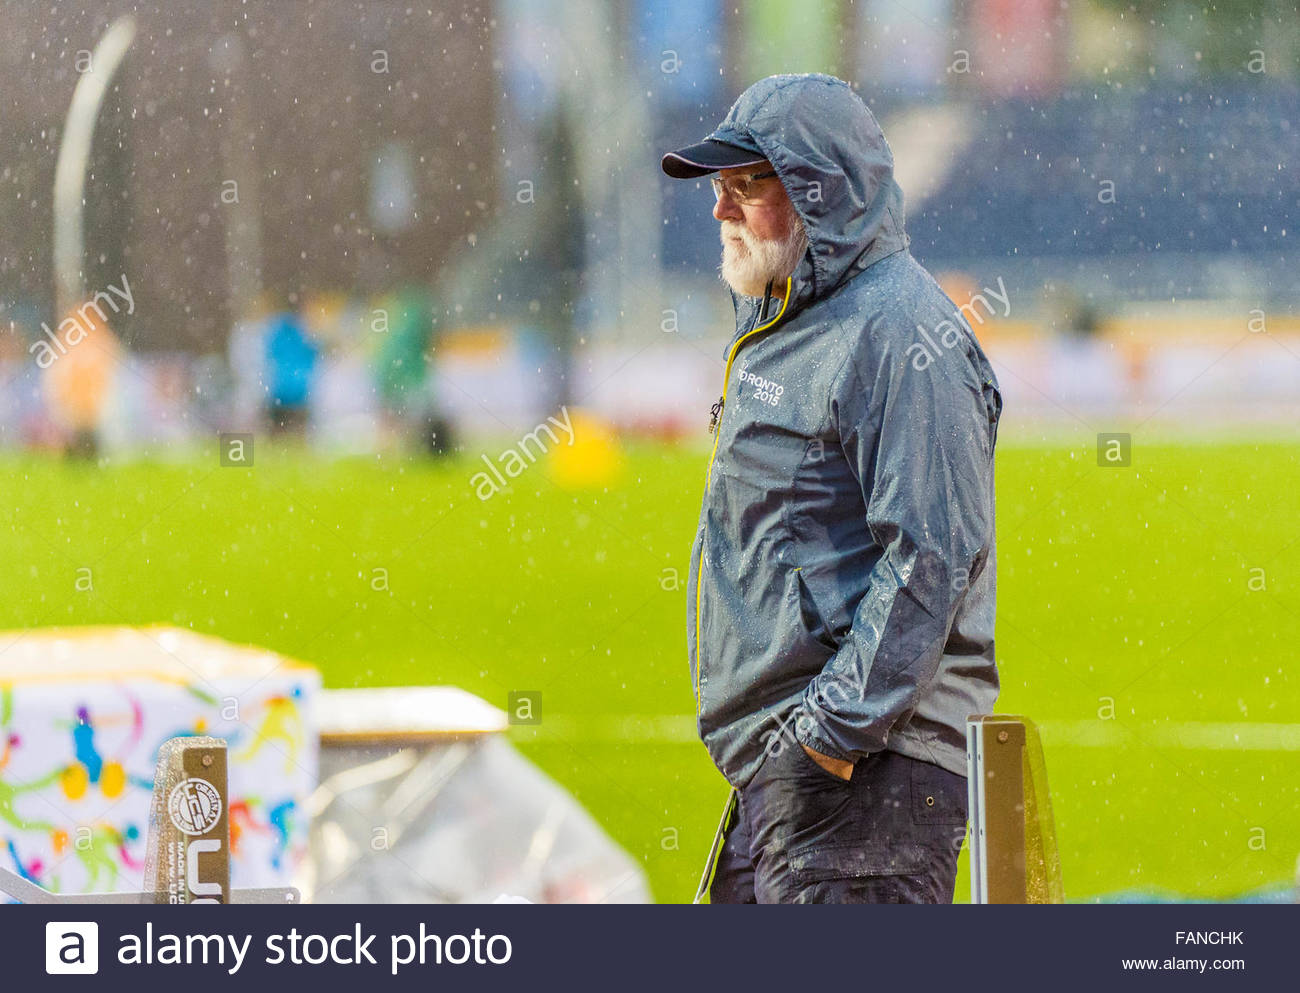 The Officials in the track and field event:Heavy rain kept most spectators under cover or away from the track entirely, - Stock Image